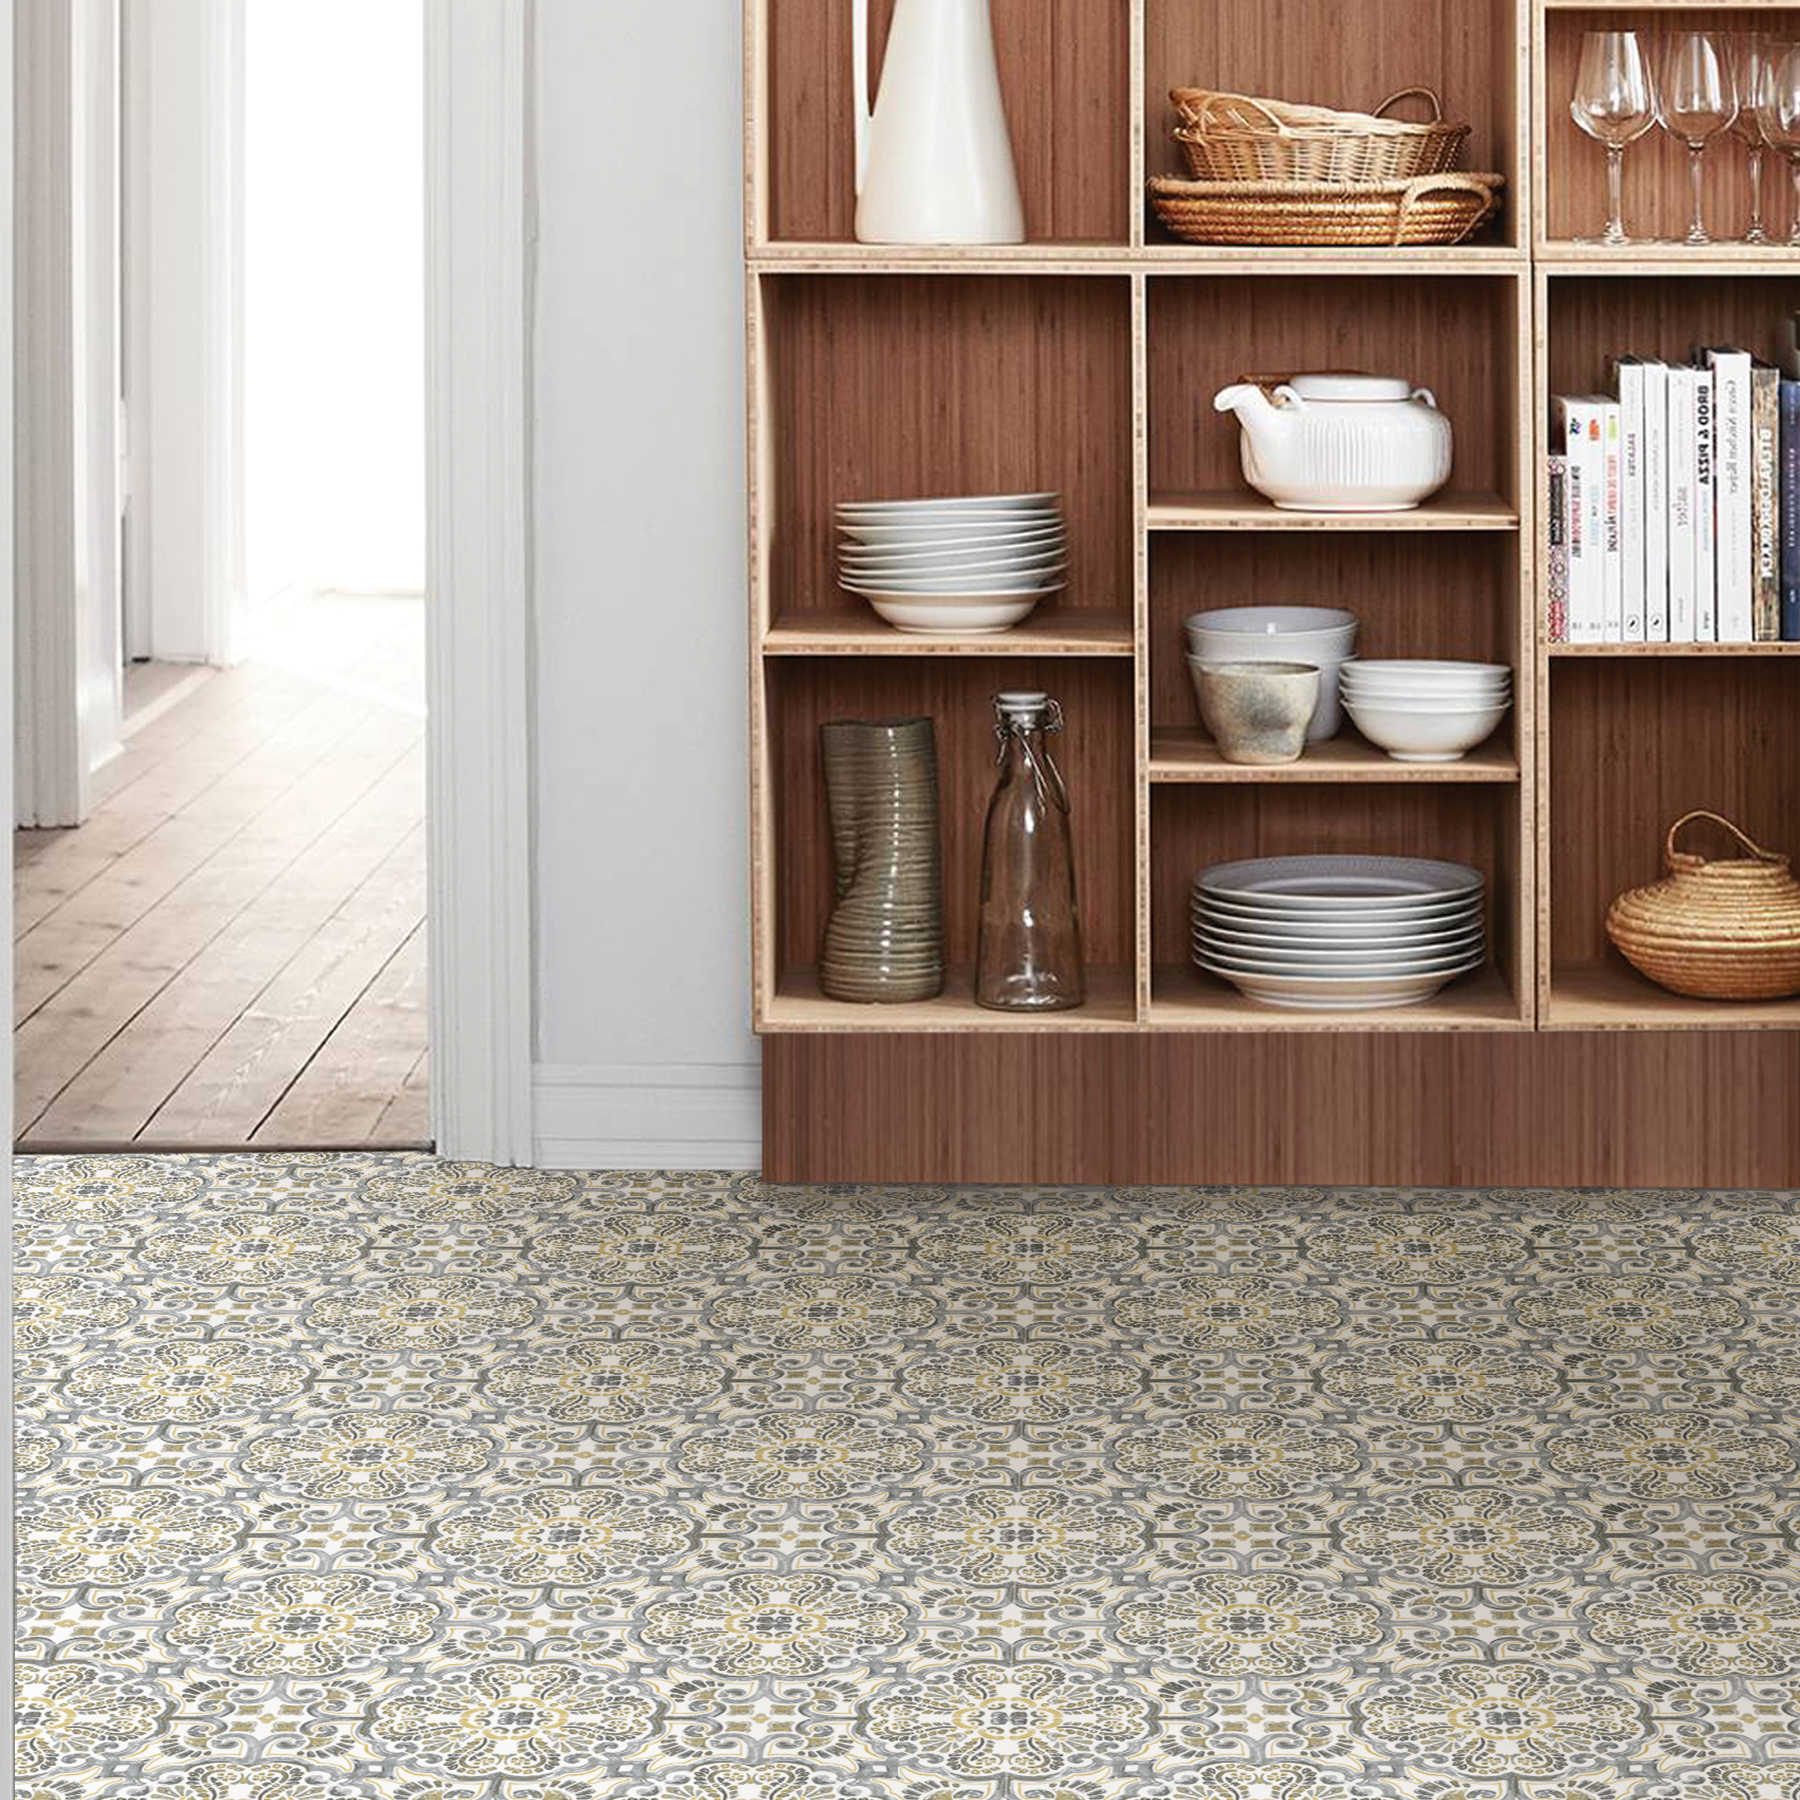 FloorPops Antico Peel & Stick Floor Tiles 10 Tiles/10 sq. ft.